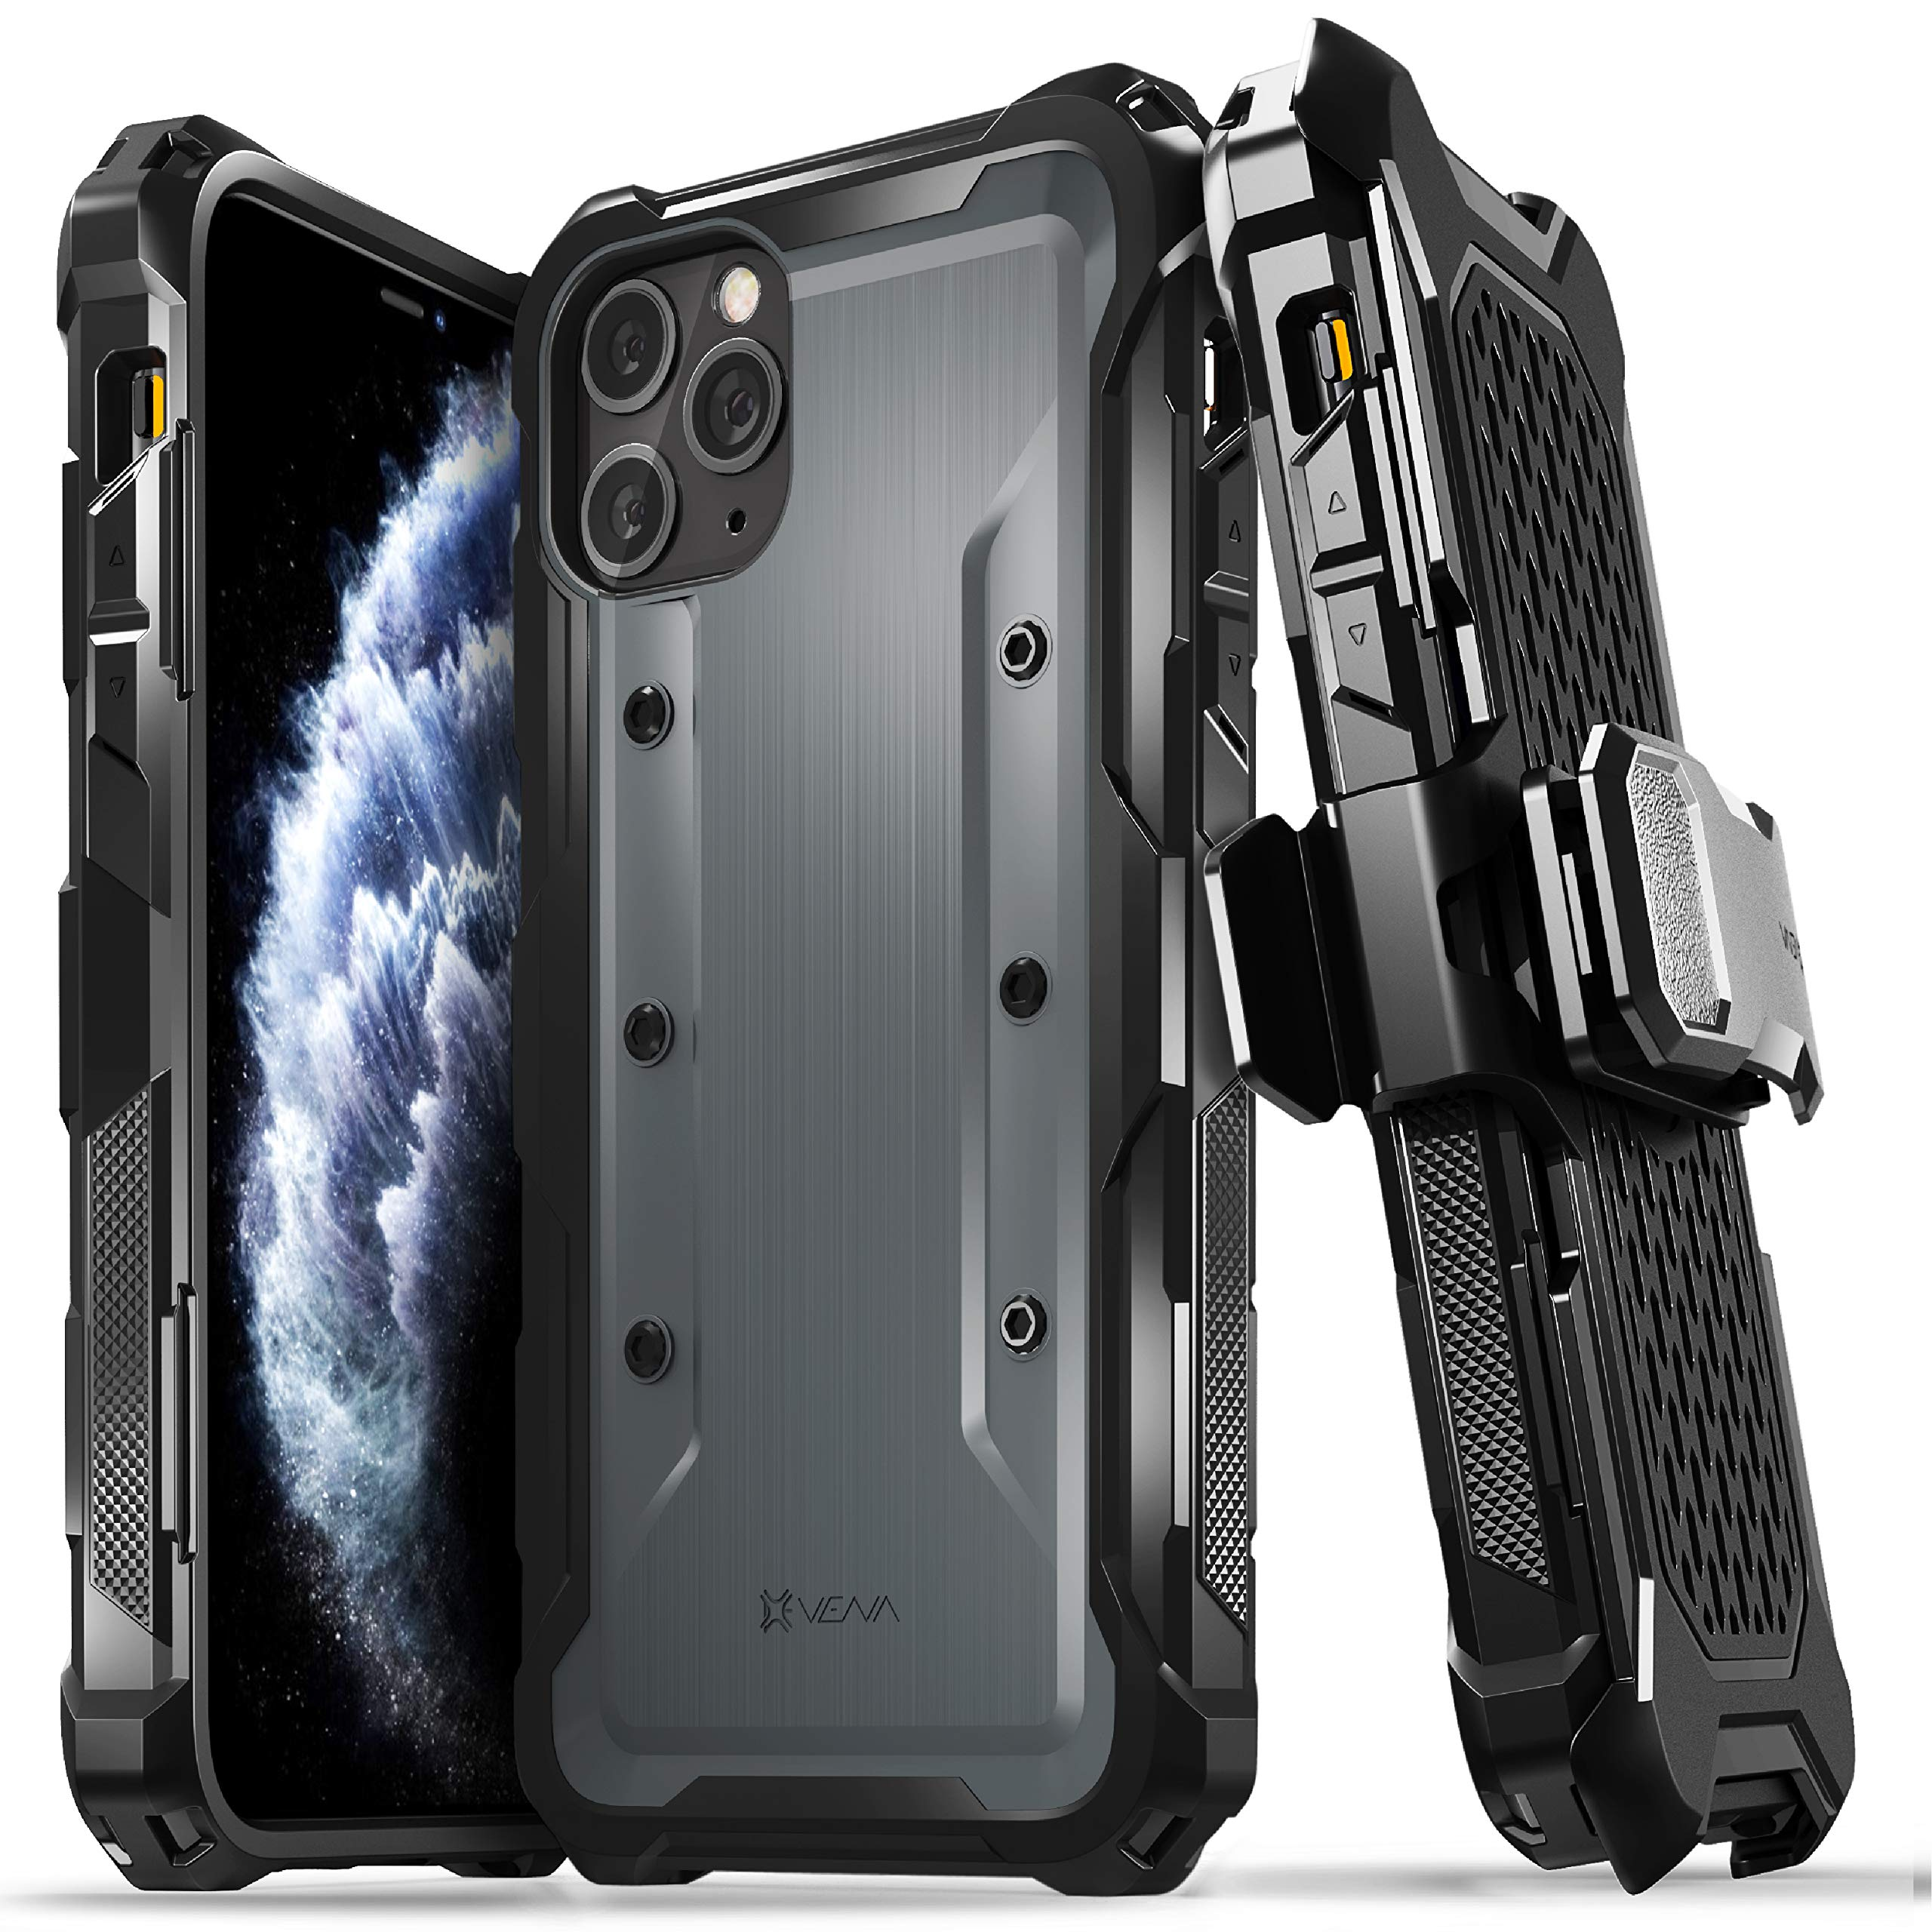 Vena vArmor iPhone 11 Pro Max Holster Case, Rugged Heavy Duty Protective Case, Designed for iPhone 11 Pro Max (6.5 inches)